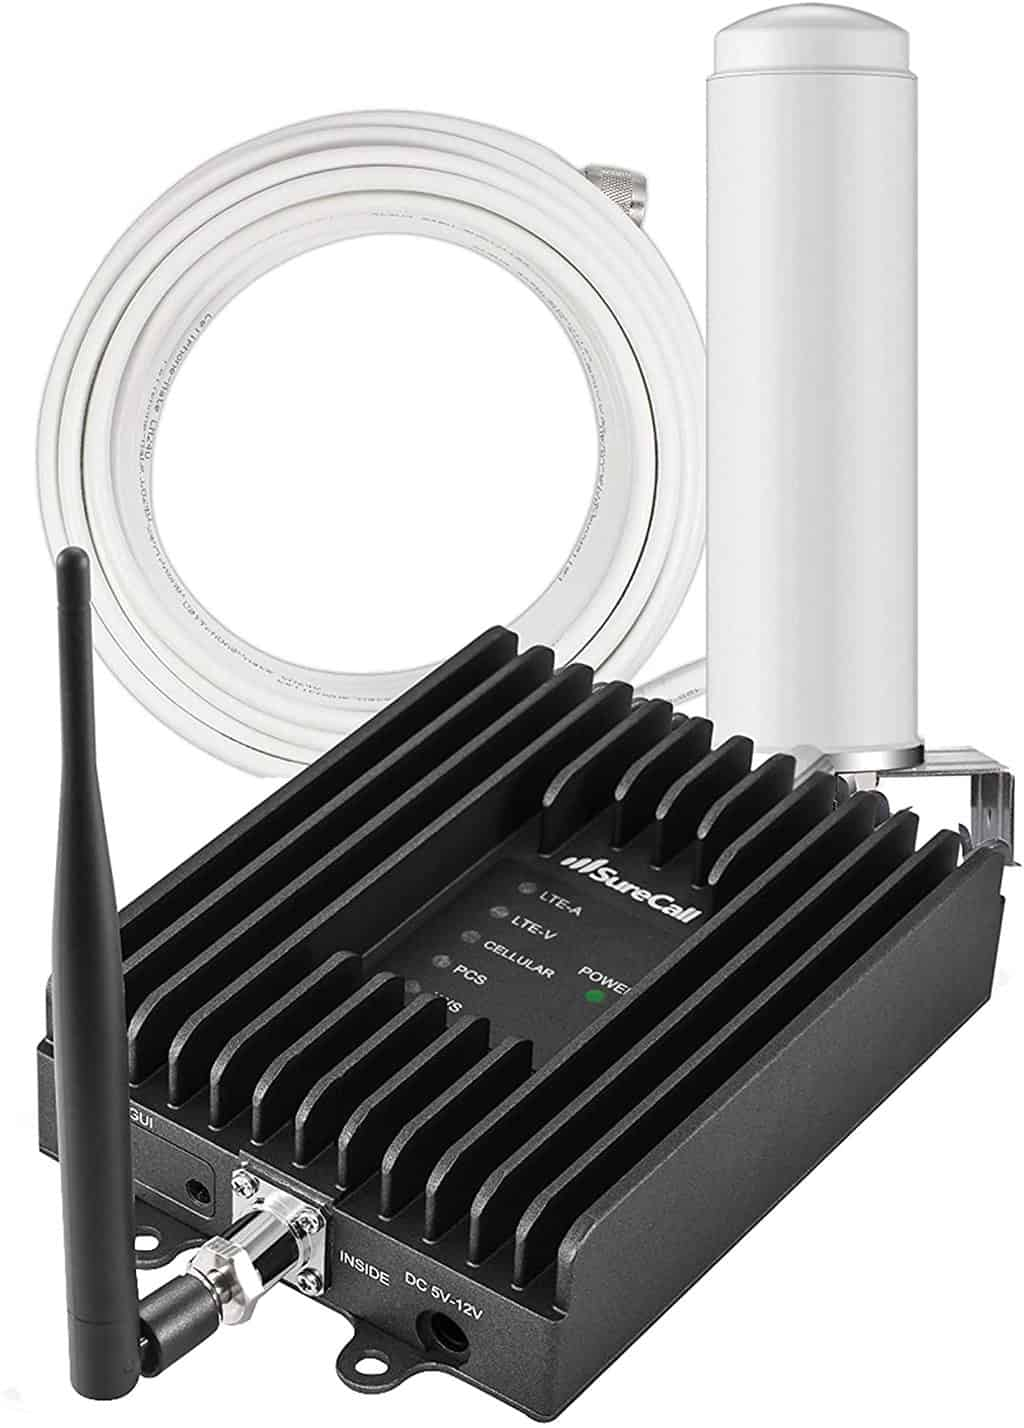 SureCall Fusion2Go 3.0 RV Cell Phone Signal Booster Kit